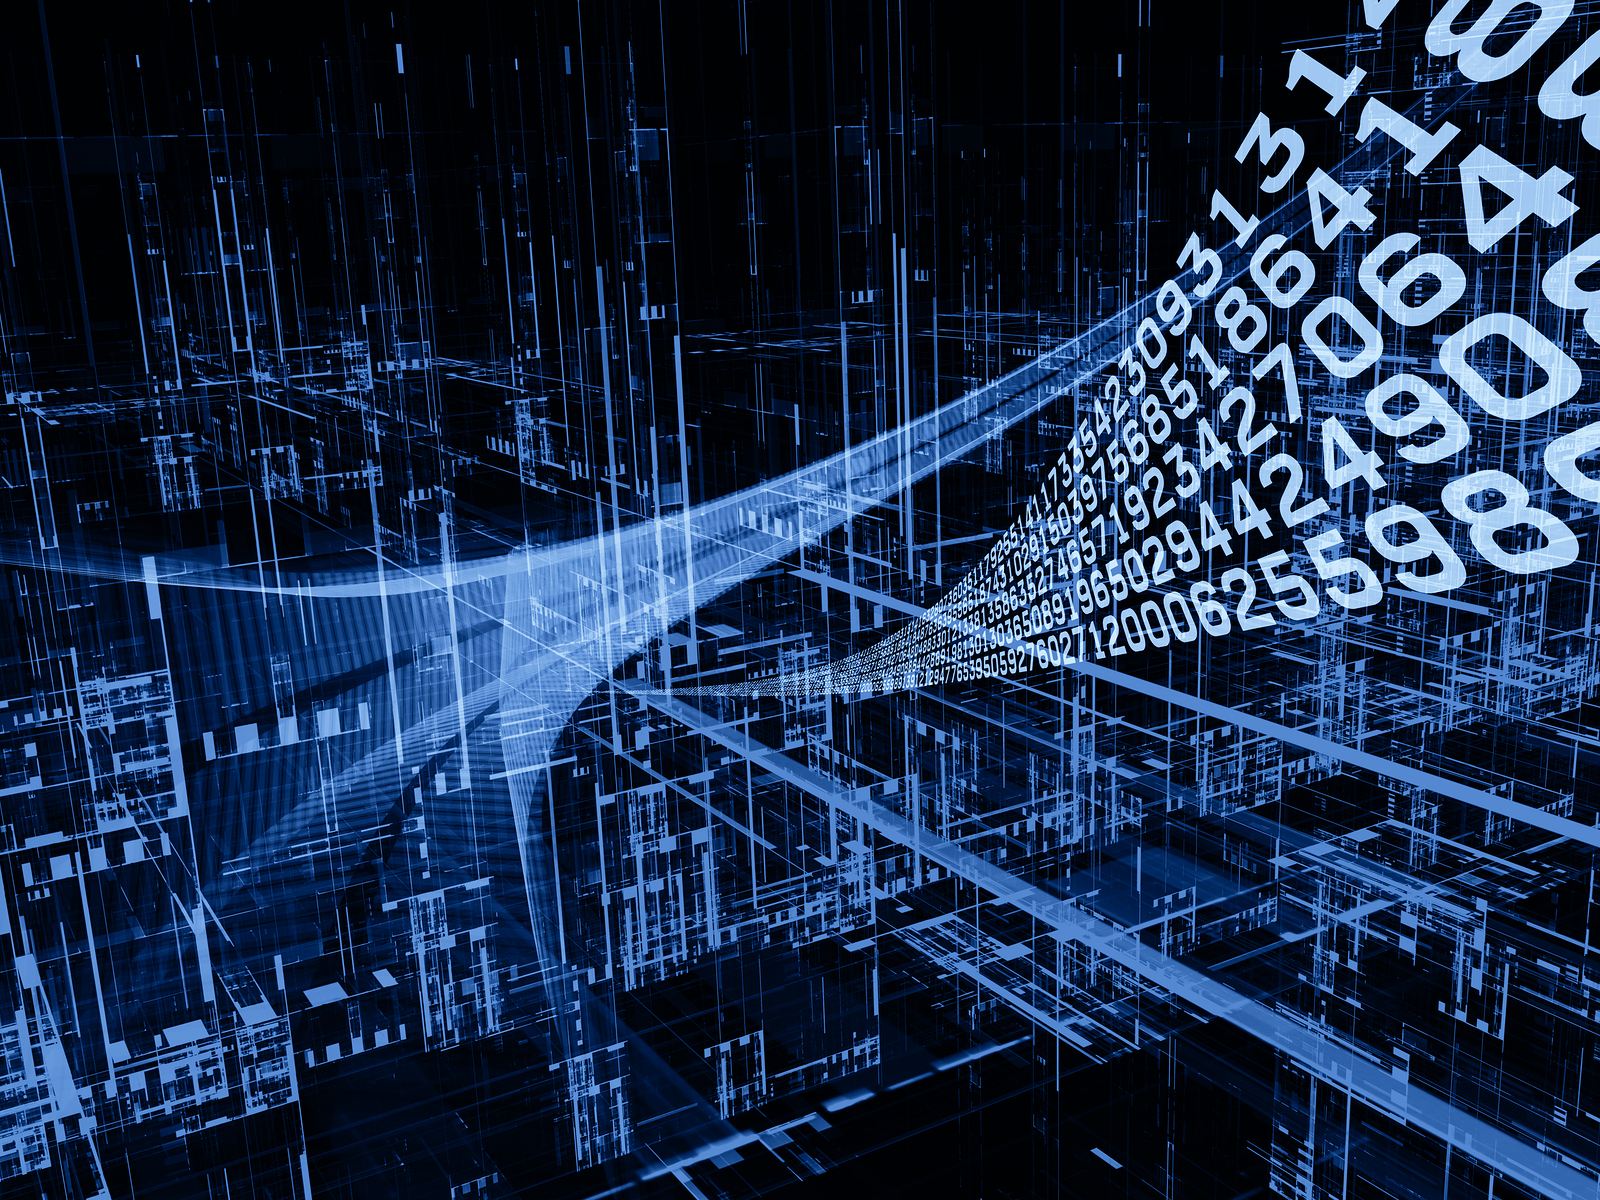 Technology Opportunity Recurring Anomaly Detection System